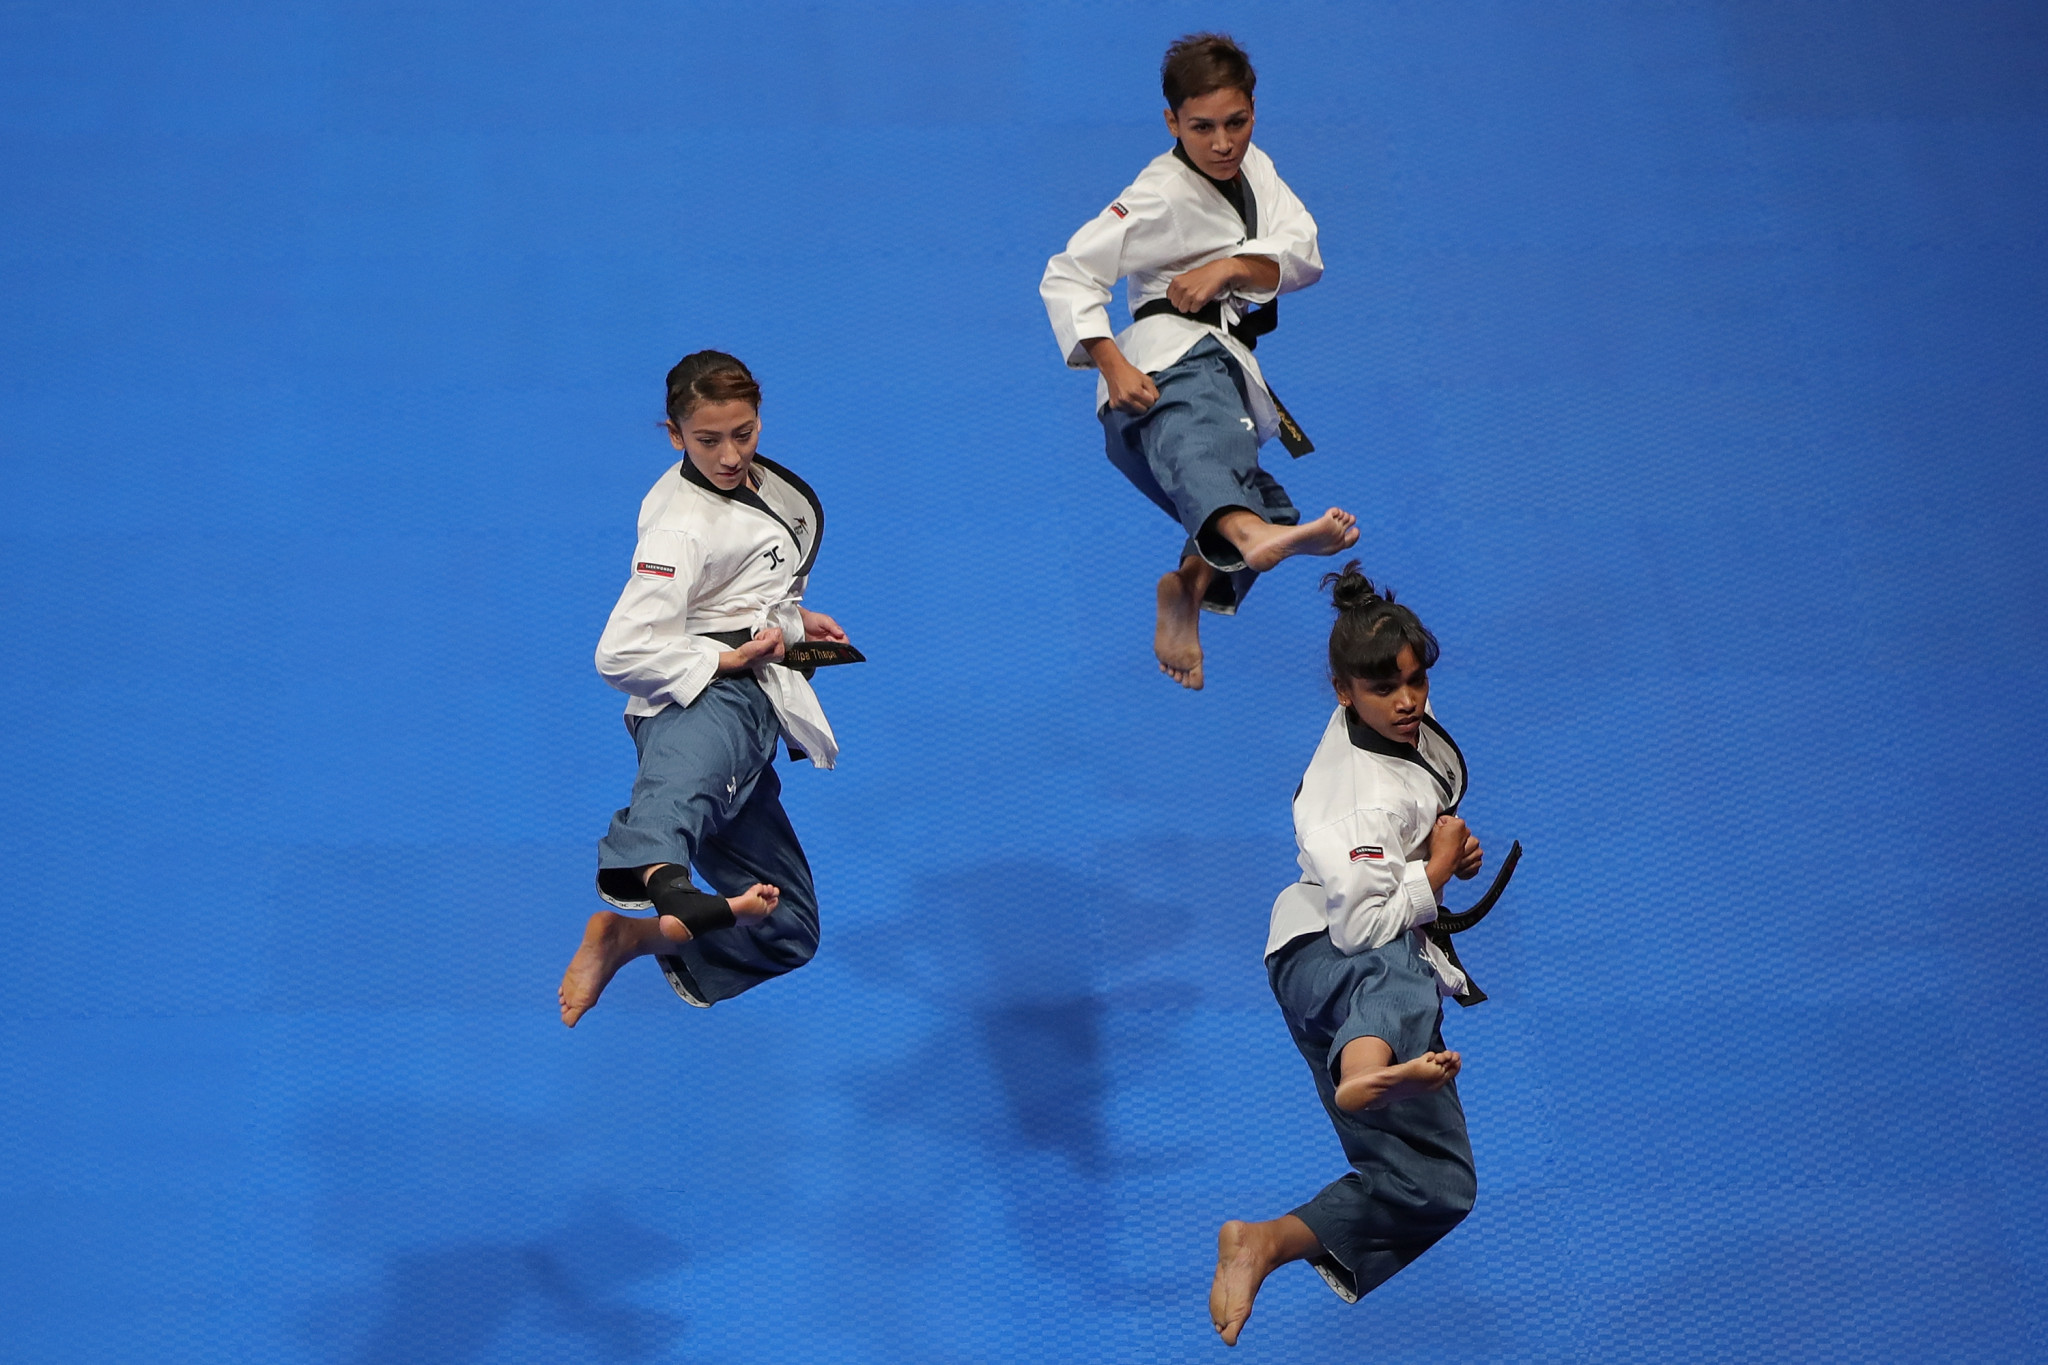 World Taekwondo Europe held an online workshop on poomsae and freestyle ©Getty Images